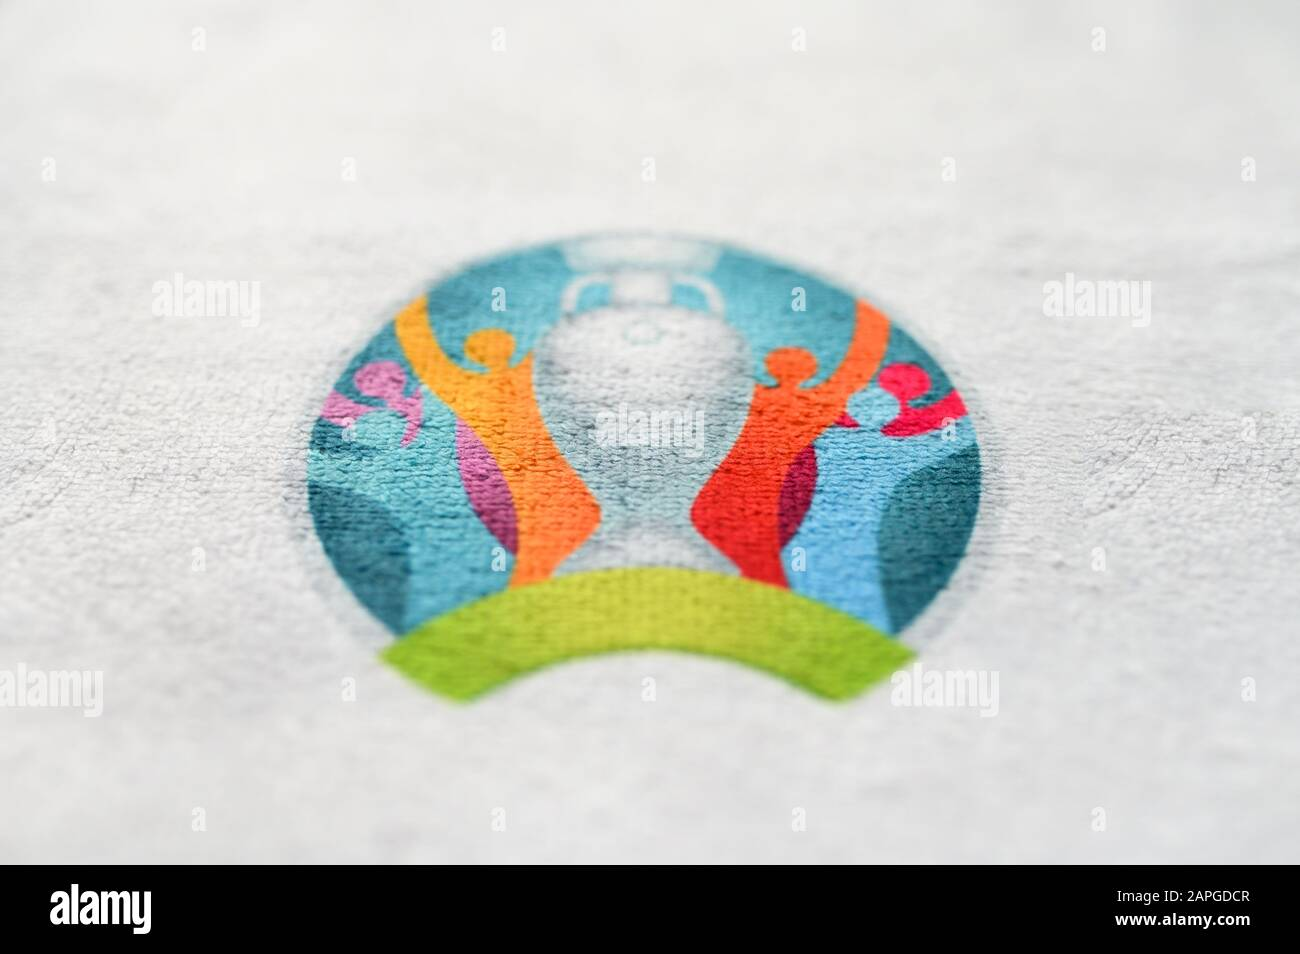 euro logo high resolution stock photography and images alamy https www alamy com madrid spain april 25 2020 euro 2020 official logo white edit space image340881207 html